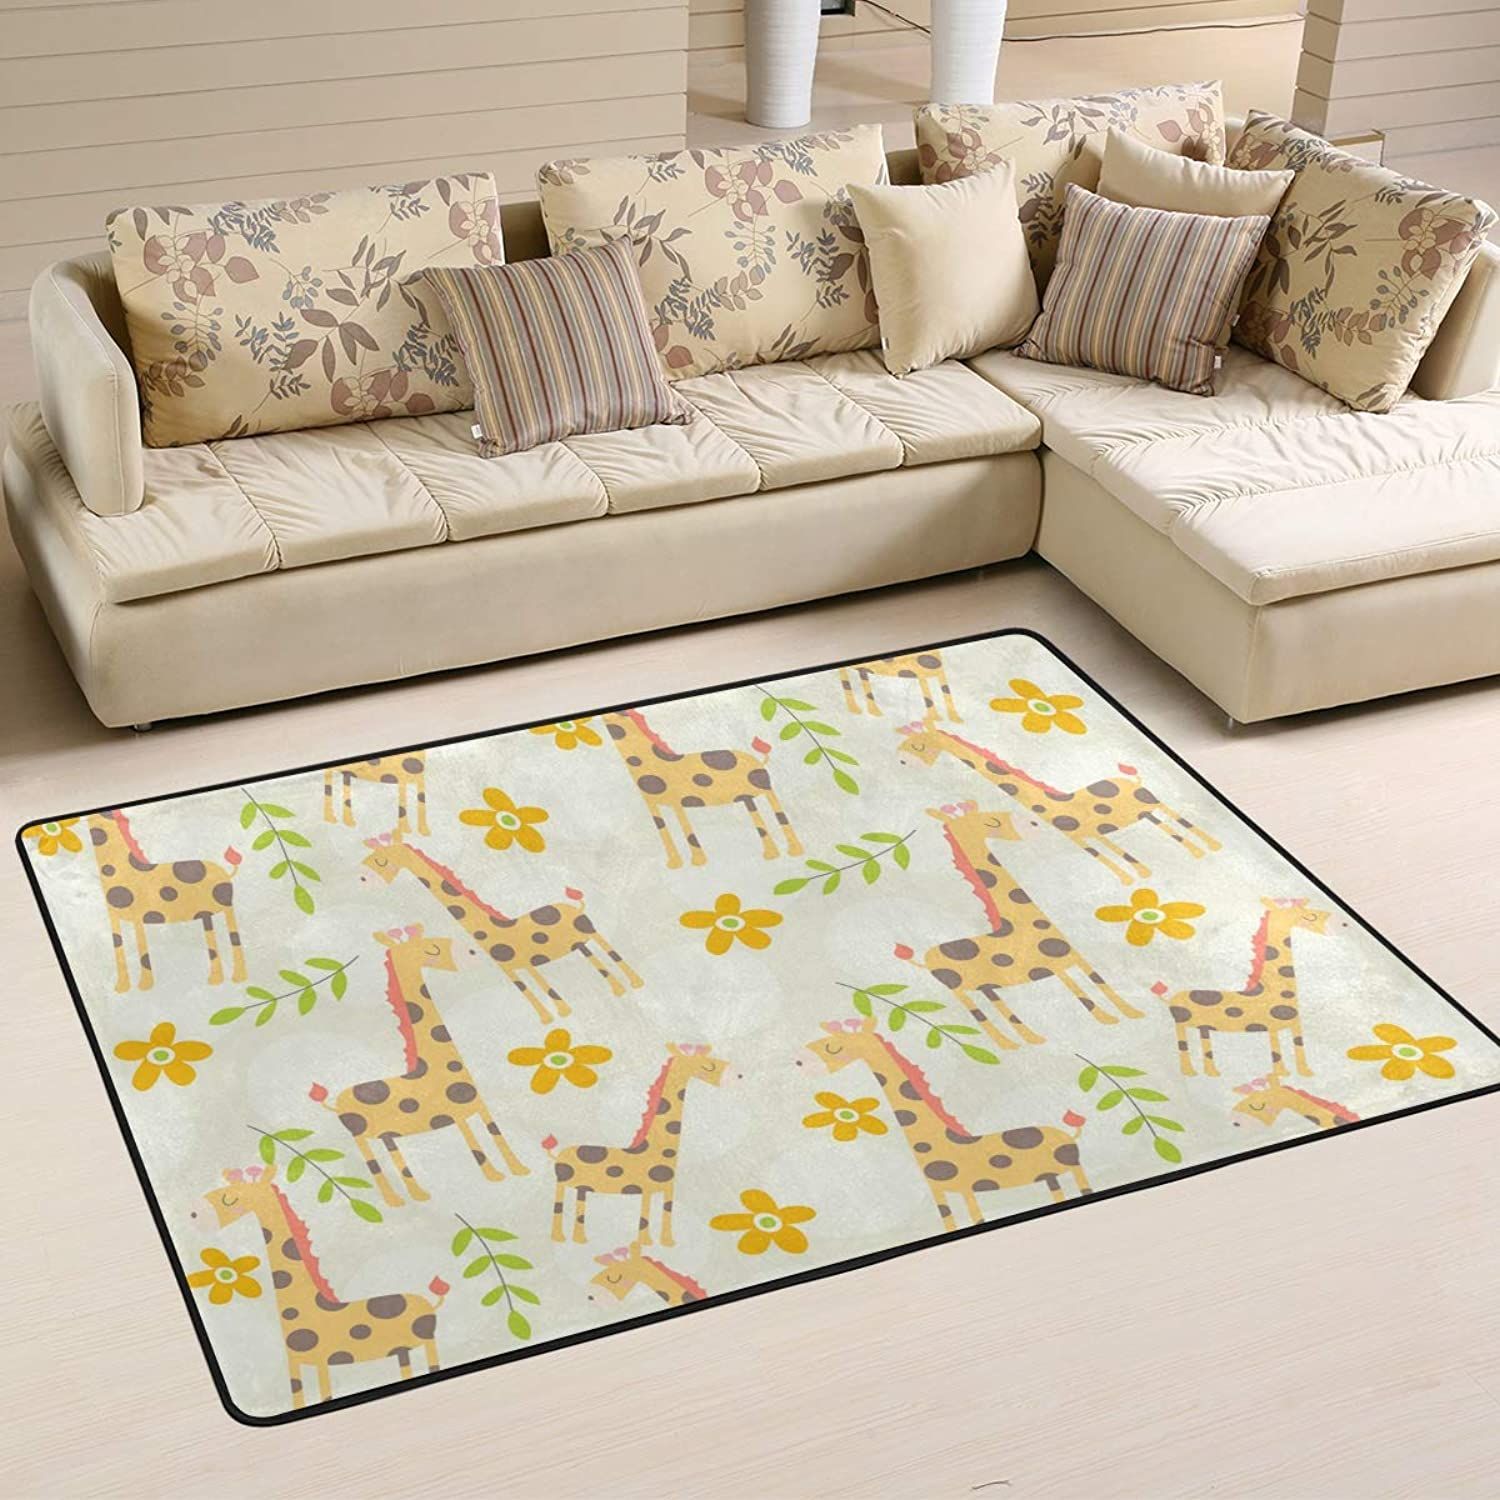 MALPLENA Cute Giraffe Rugs for Living Room Doormat Carpet Floor Mats shoes Scraper for Living Room Dining Room Bedroom Kitchen Non Slip